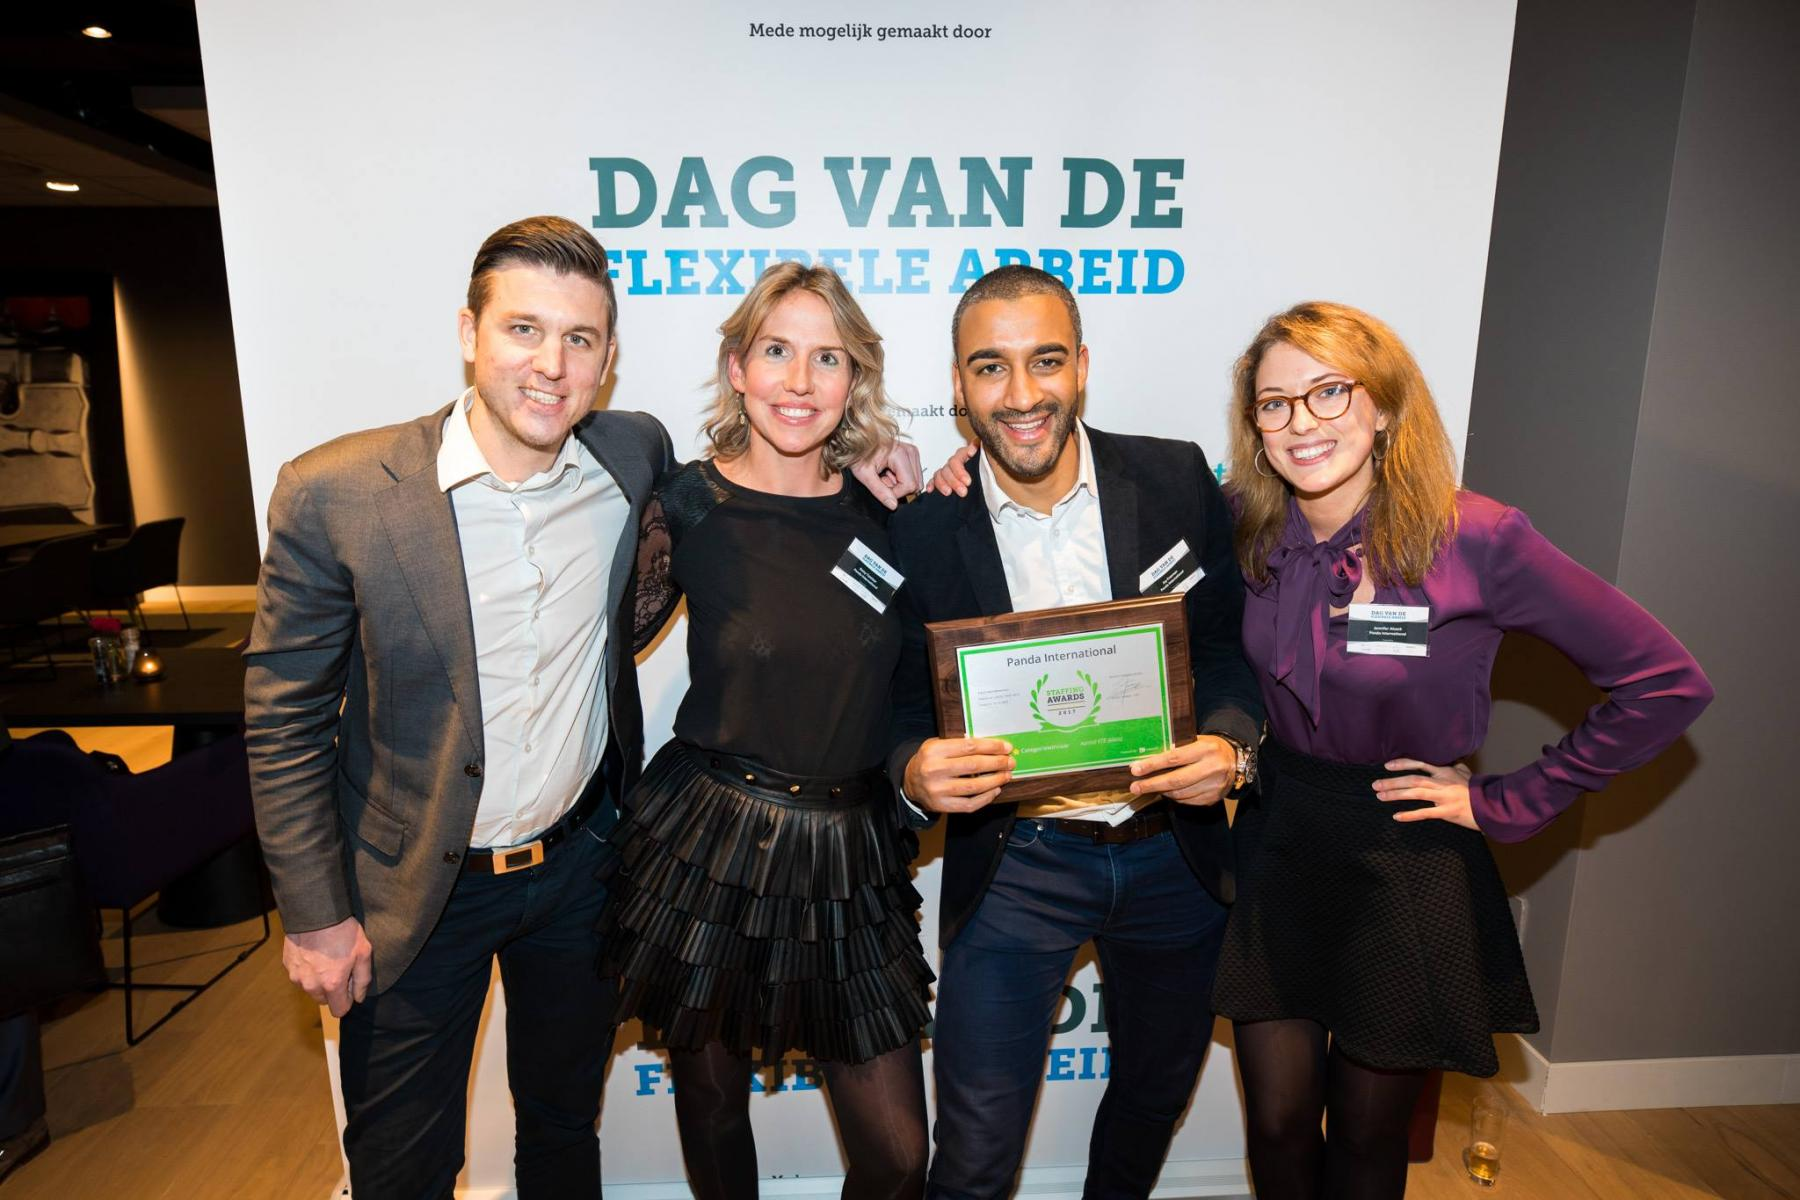 vijfde plek staffingawards panda international community